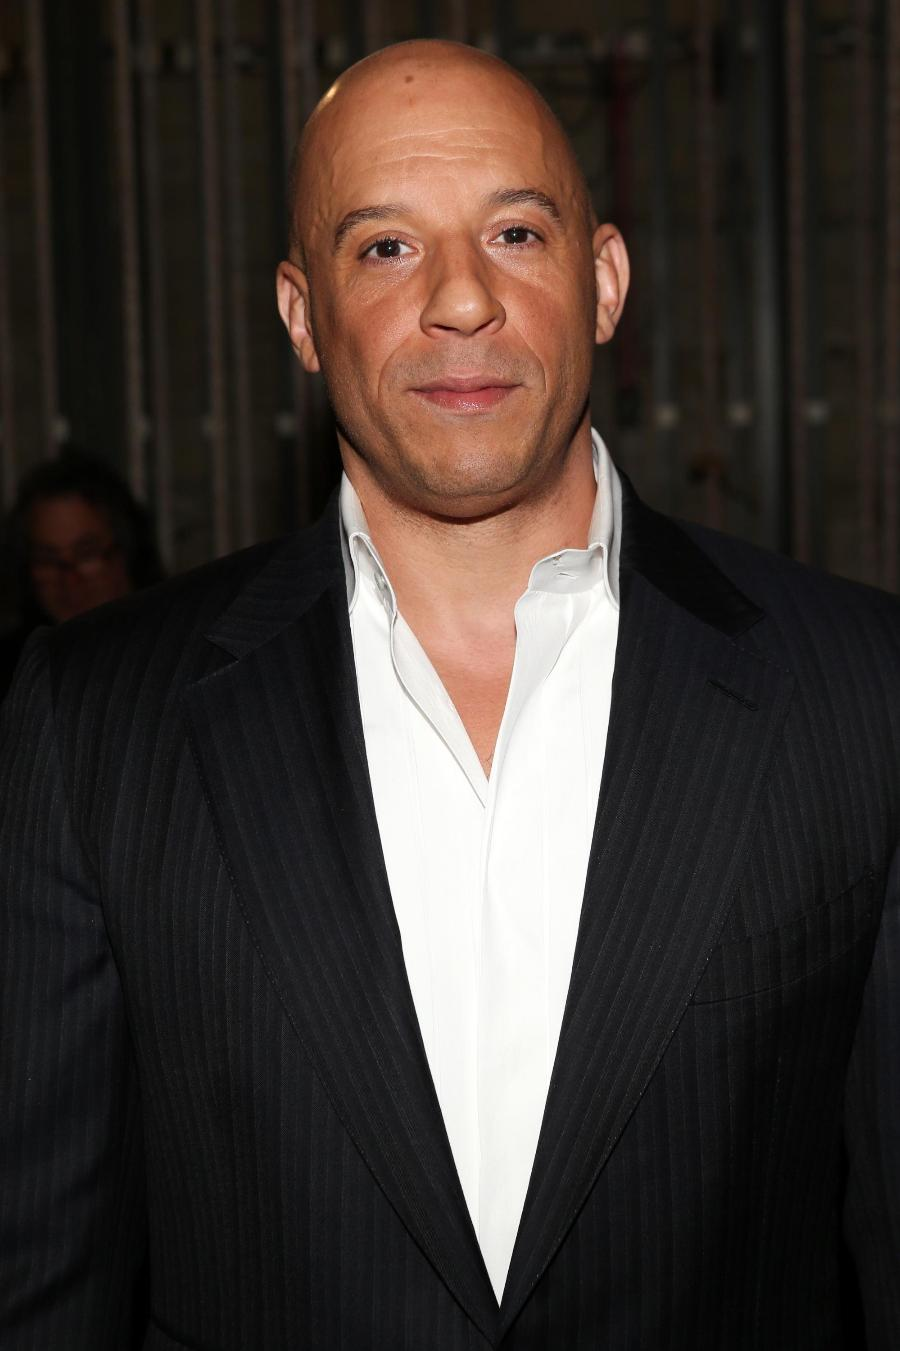 Vin Diesel's 'Fast & Furious 7' Problem: Too Slow, Too Infuriating